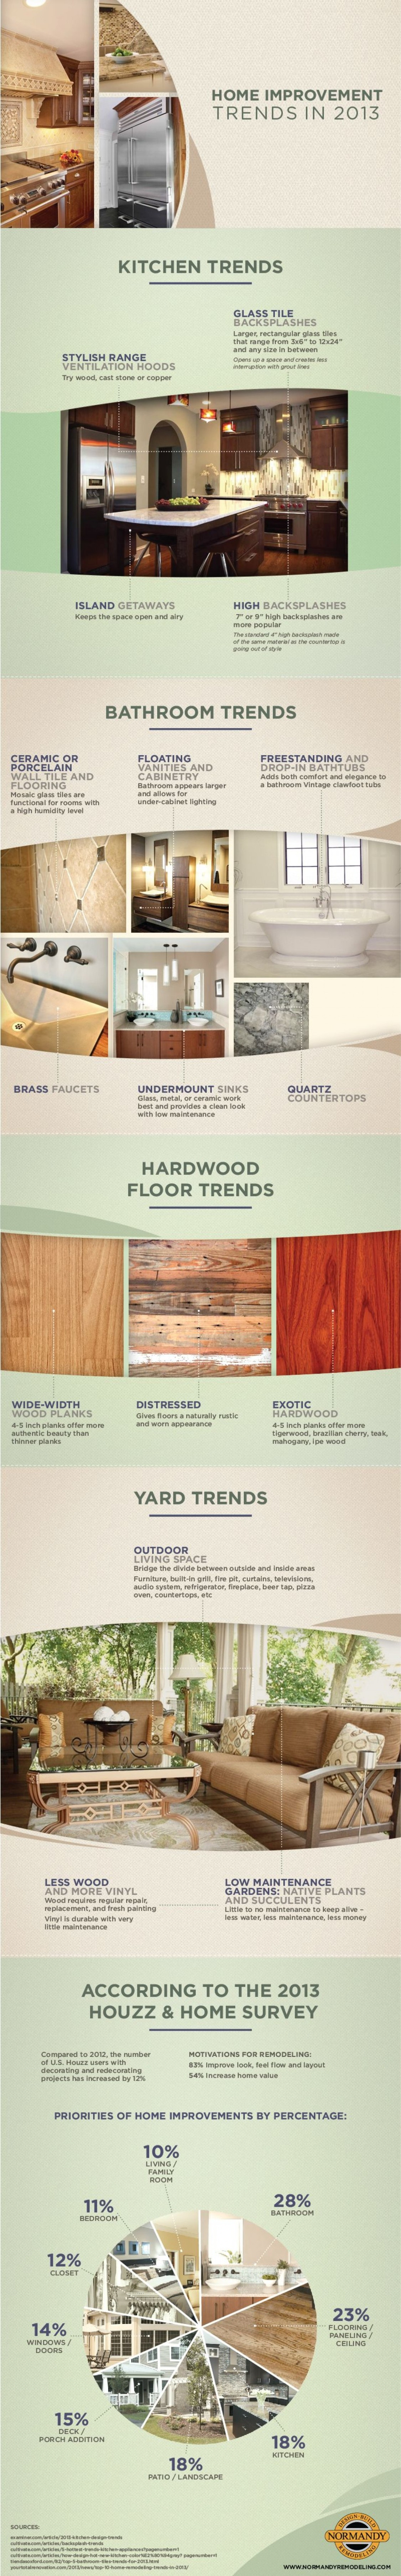 1. Home Improvements Trends in 2013